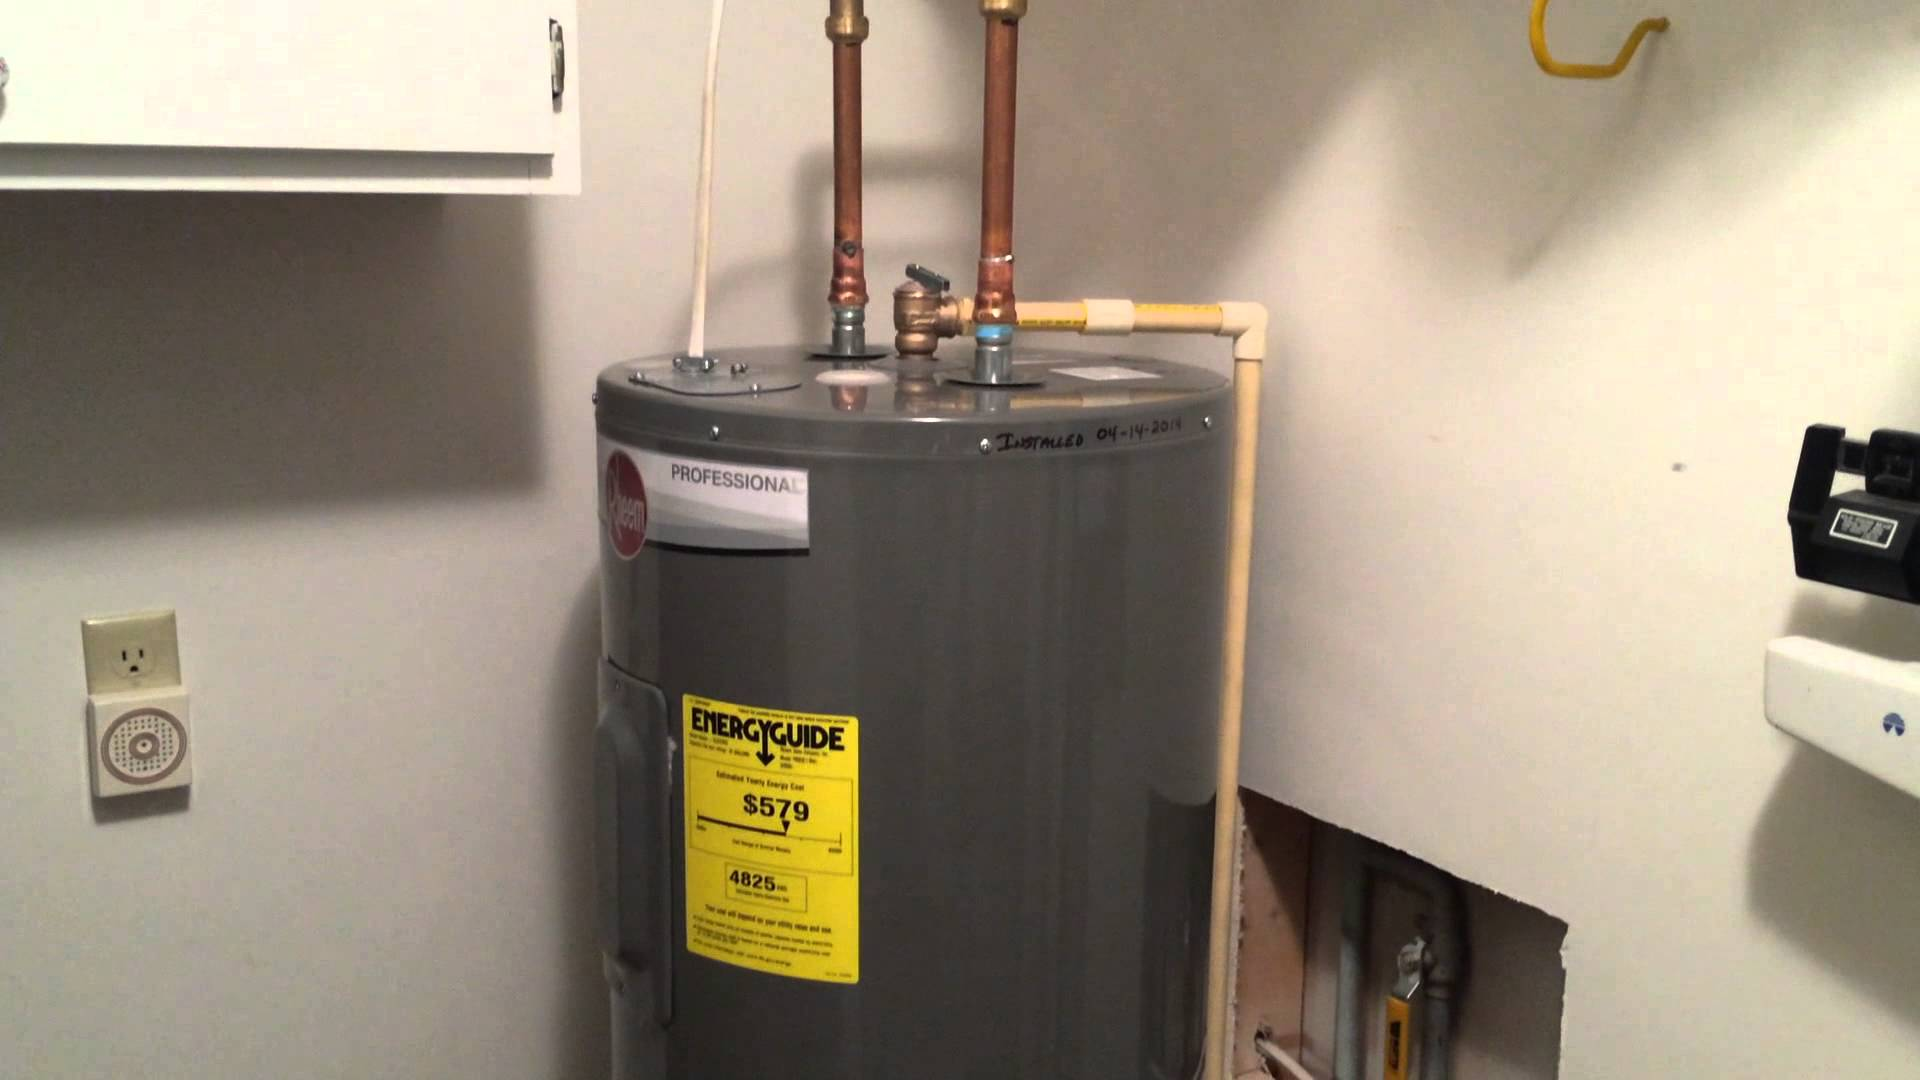 rheem electric water heater wiring diagram 2 lights off one switch professional series versus